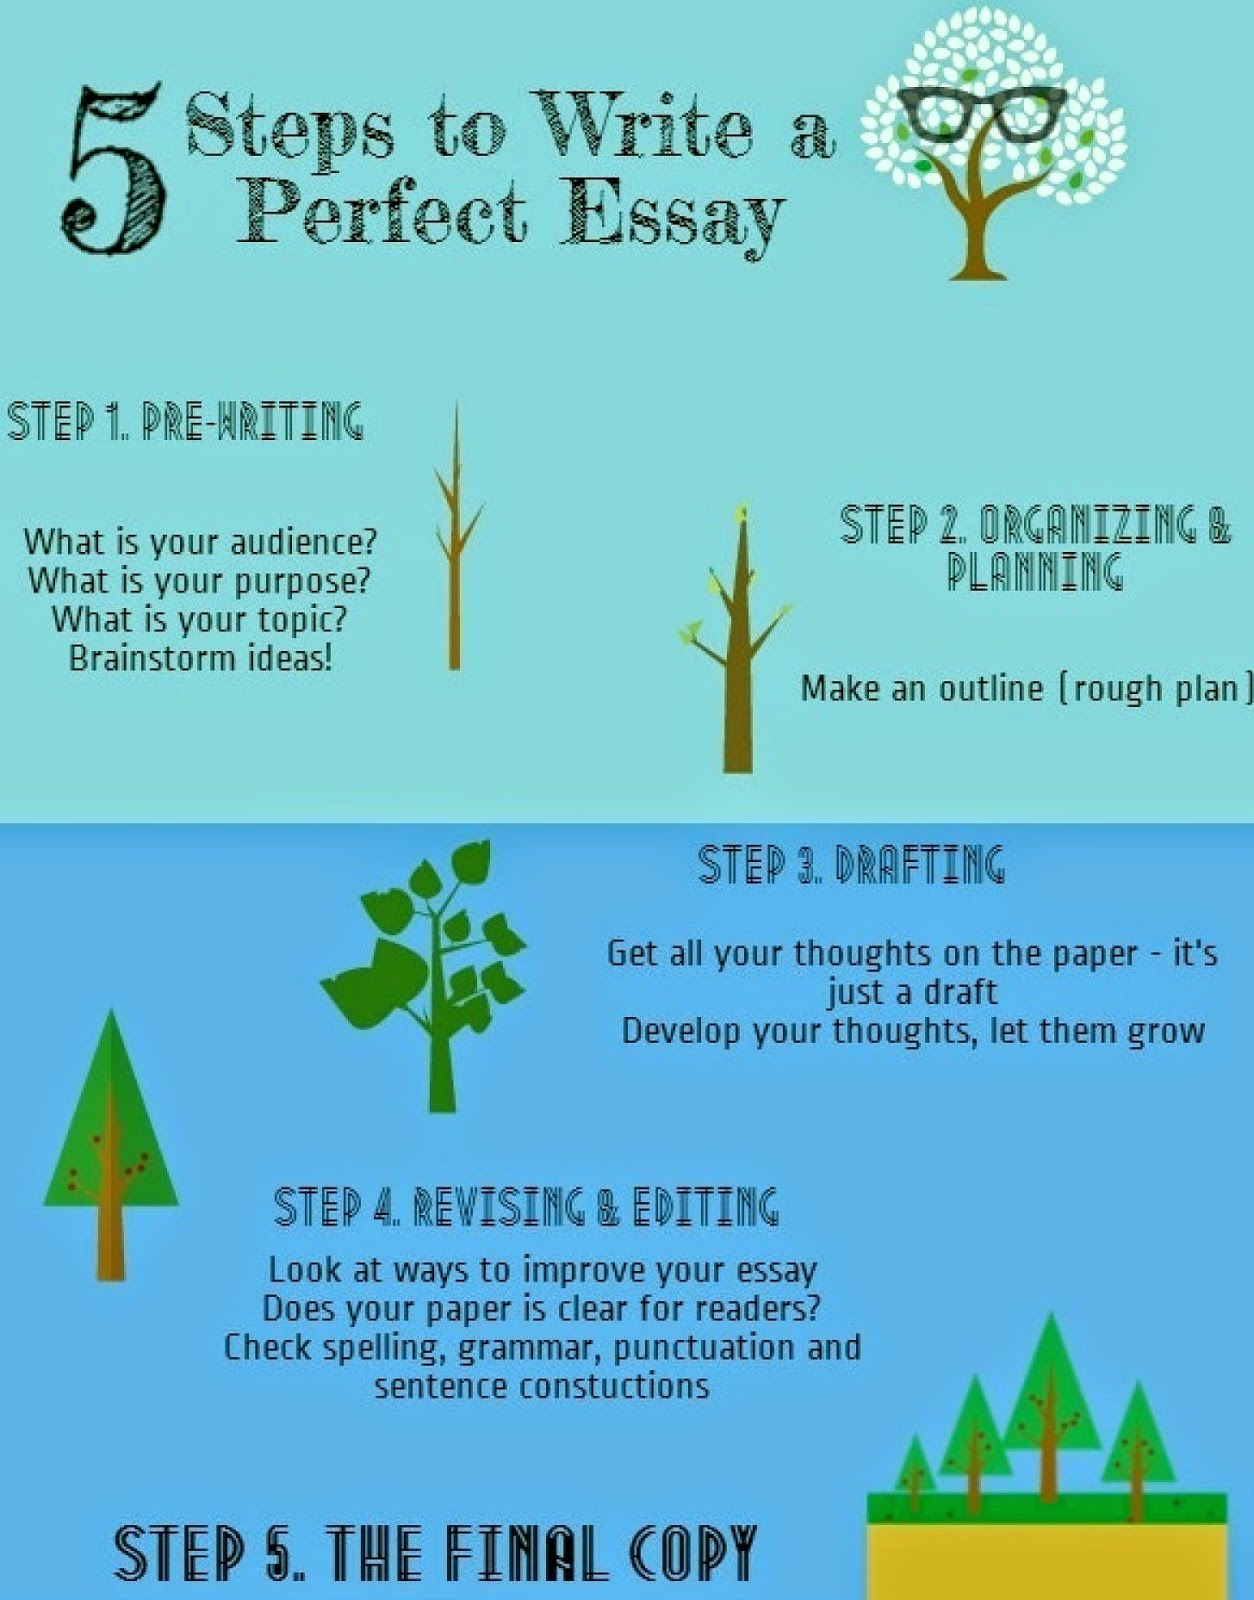 008 How To Write An Essay Fast Writing Service Character Easy Steps Narr Paragraph Good Argumentative In Five Pdf Persuasive Narrative Fascinating Academic English Exam Full